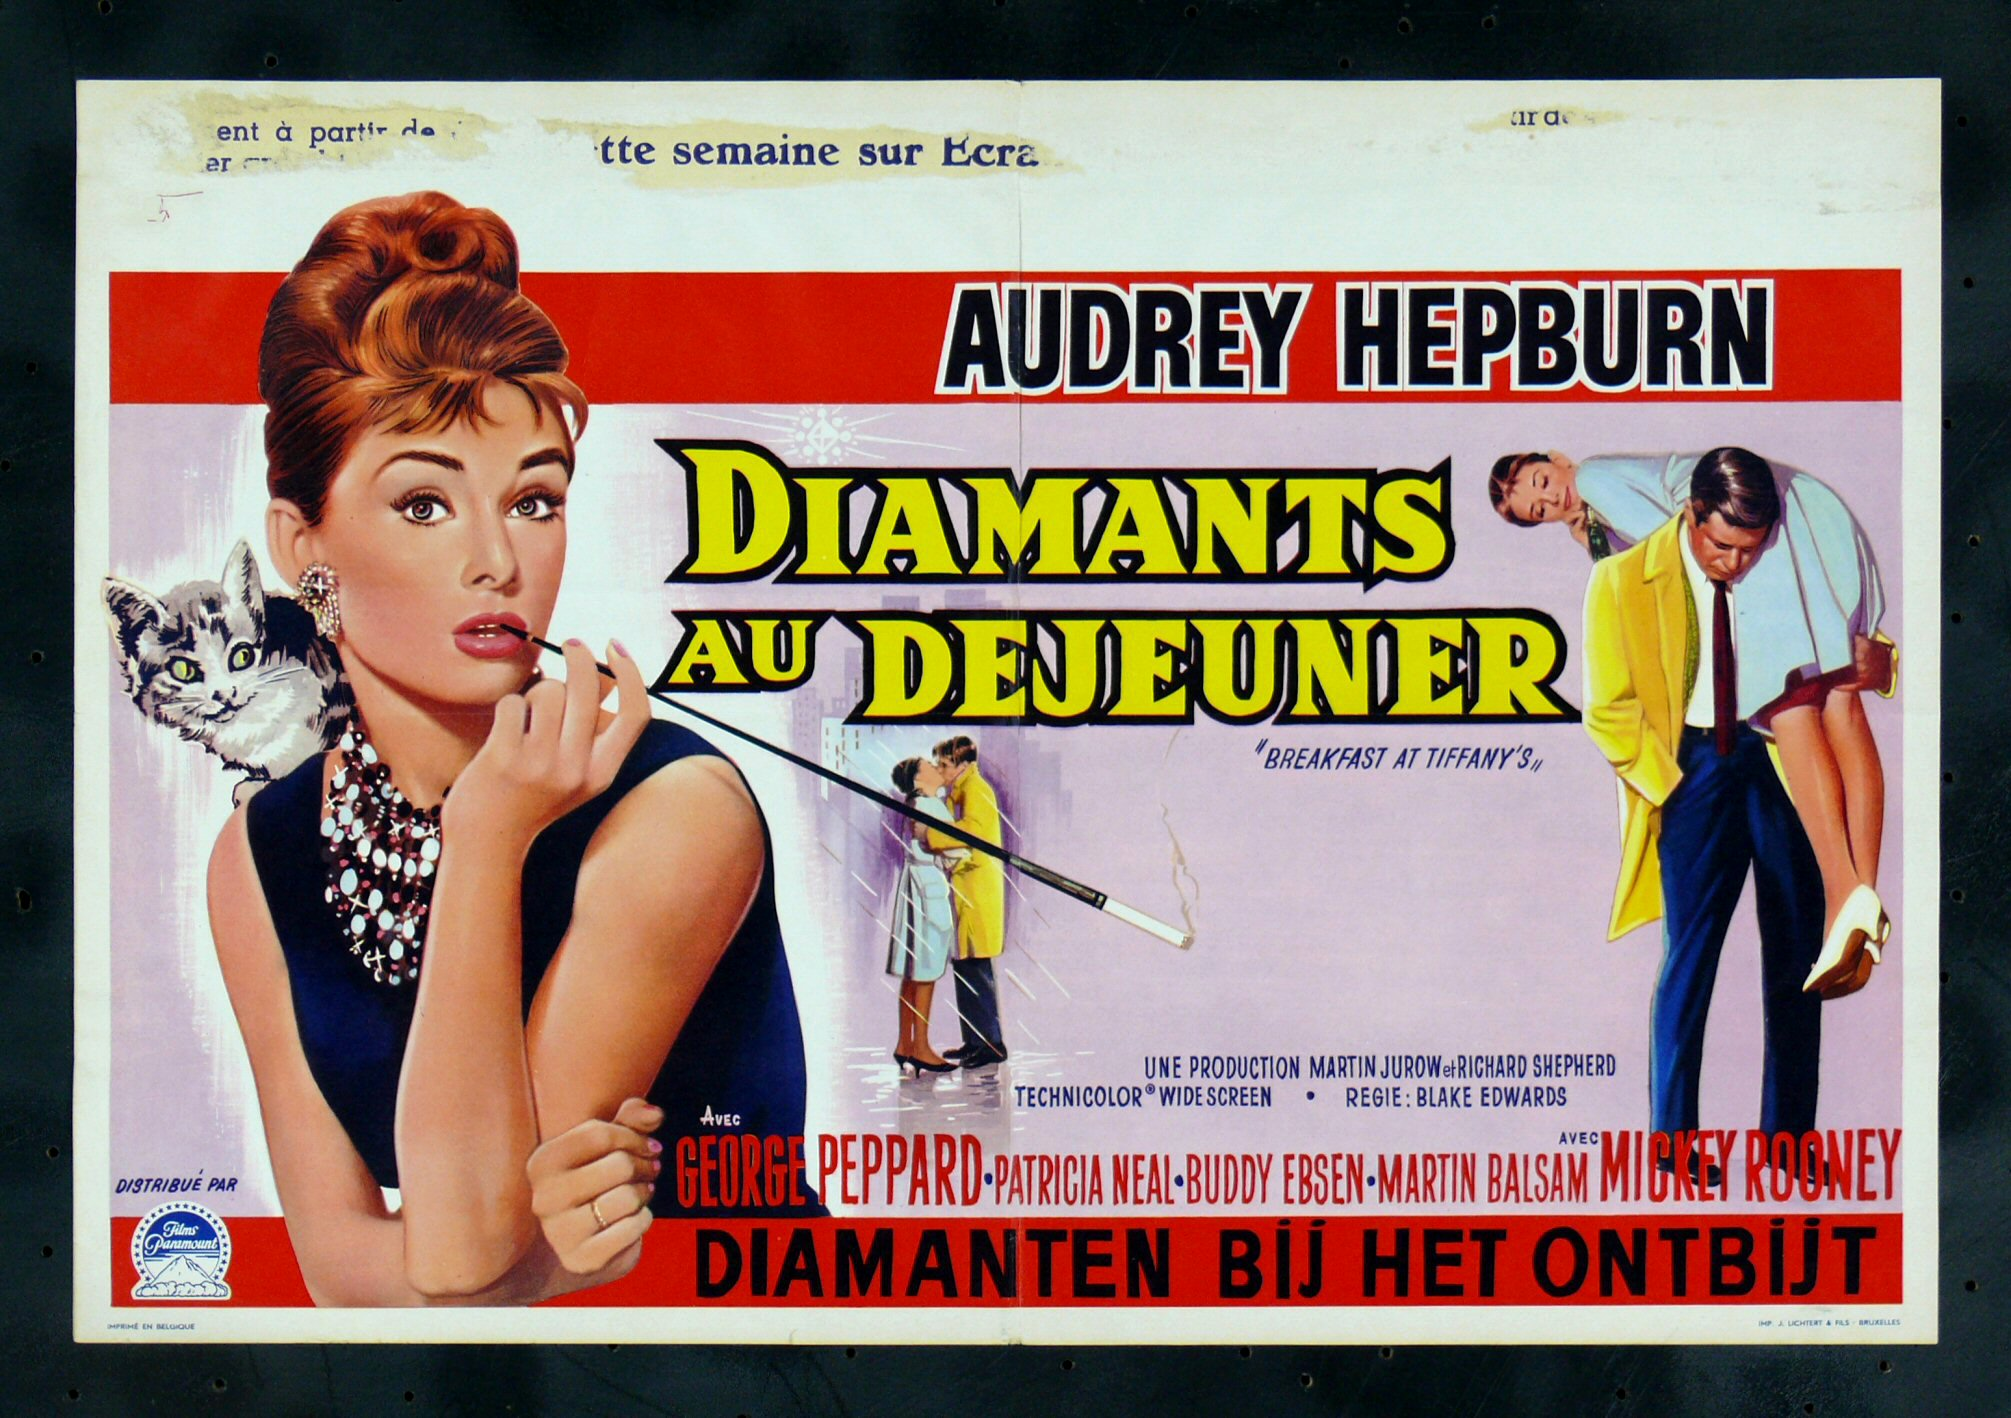 breakfast at tiffanys cinemasterpieces belgium movie poster audrey hepburn 39 61 ebay. Black Bedroom Furniture Sets. Home Design Ideas